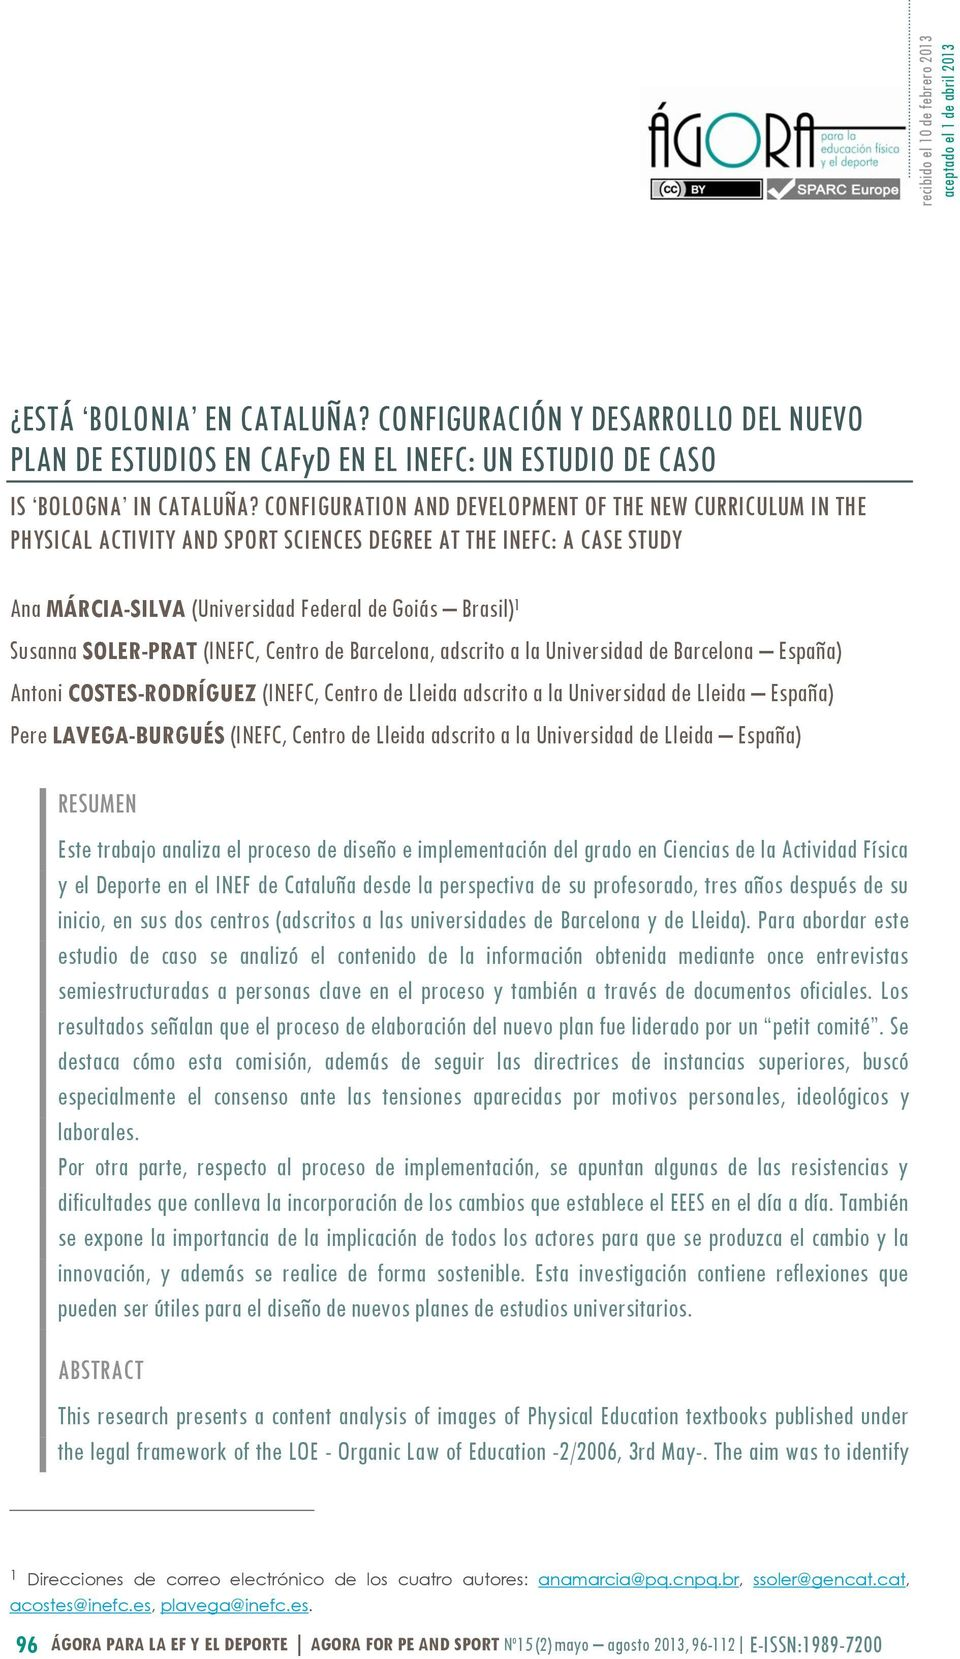 CONFIGURATION AND DEVELOPMENT OF THE NEW CURRICULUM IN THE PHYSICAL ACTIVITY AND SPORT SCIENCES DEGREE AT THE INEFC: A CASE STUDY Ana MÁRCIA-SILVA (Universidad Federal de Goiás Brasil) 1 Susanna